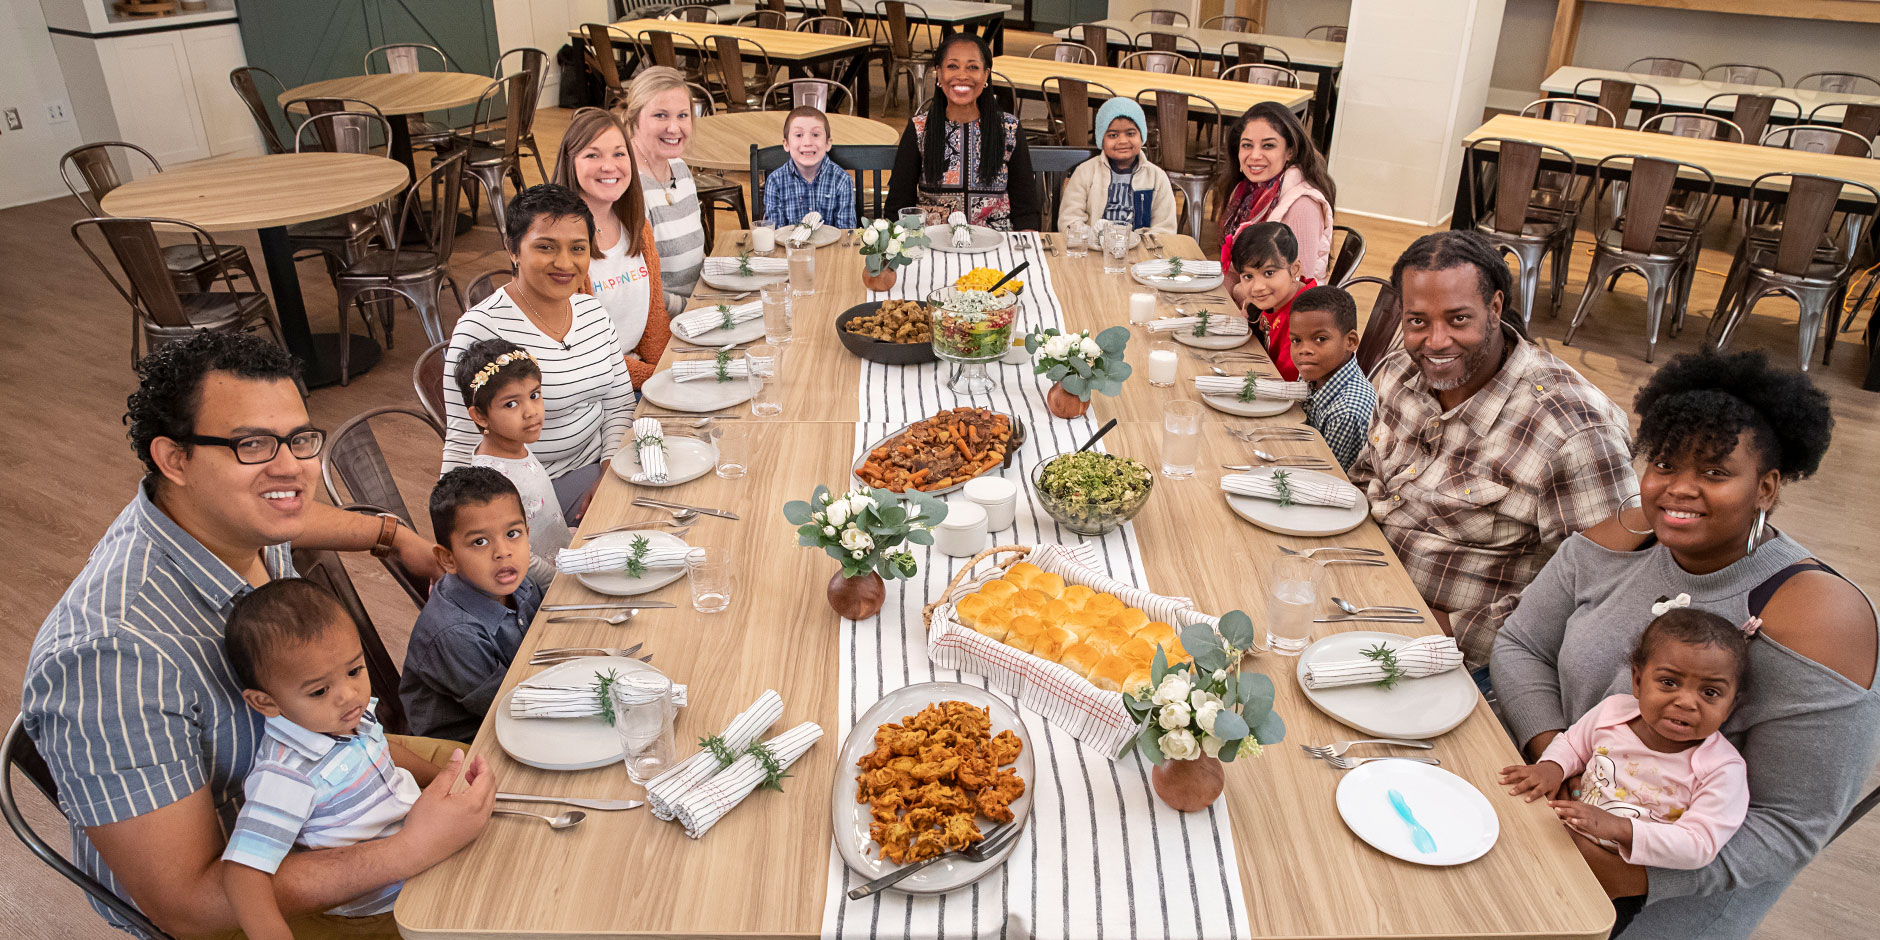 Target's Laysha Ward enjoys a meal at Target House surrounded by children